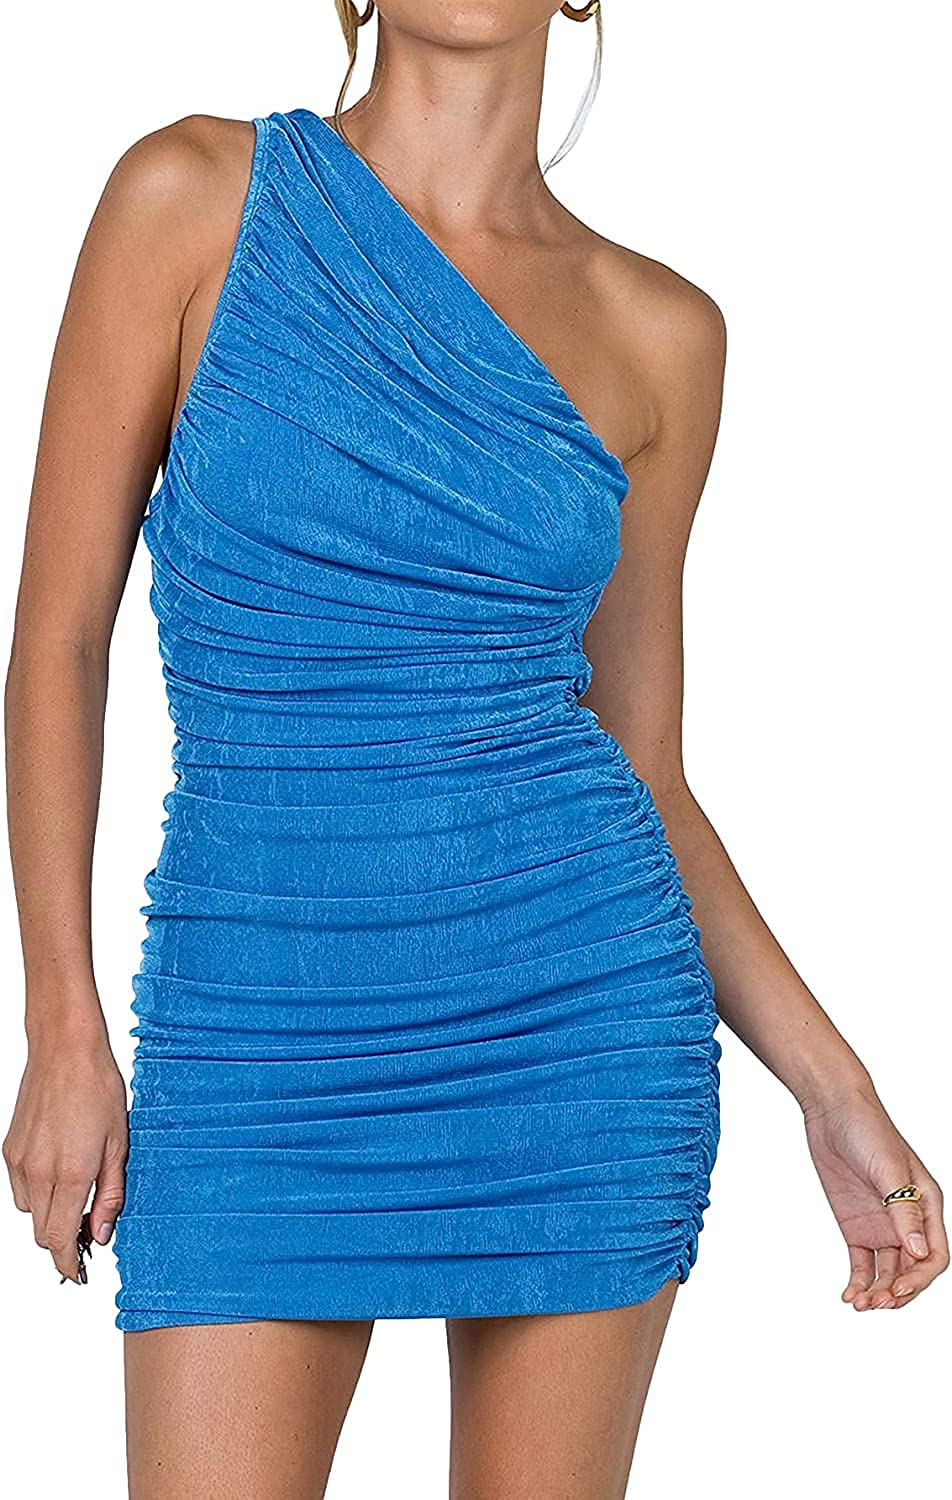 Soulomelody Women's Sexy One Shoulder Ruched Sleeveless Bodycon Party Club Cocktail Dresses Mini Short Dress